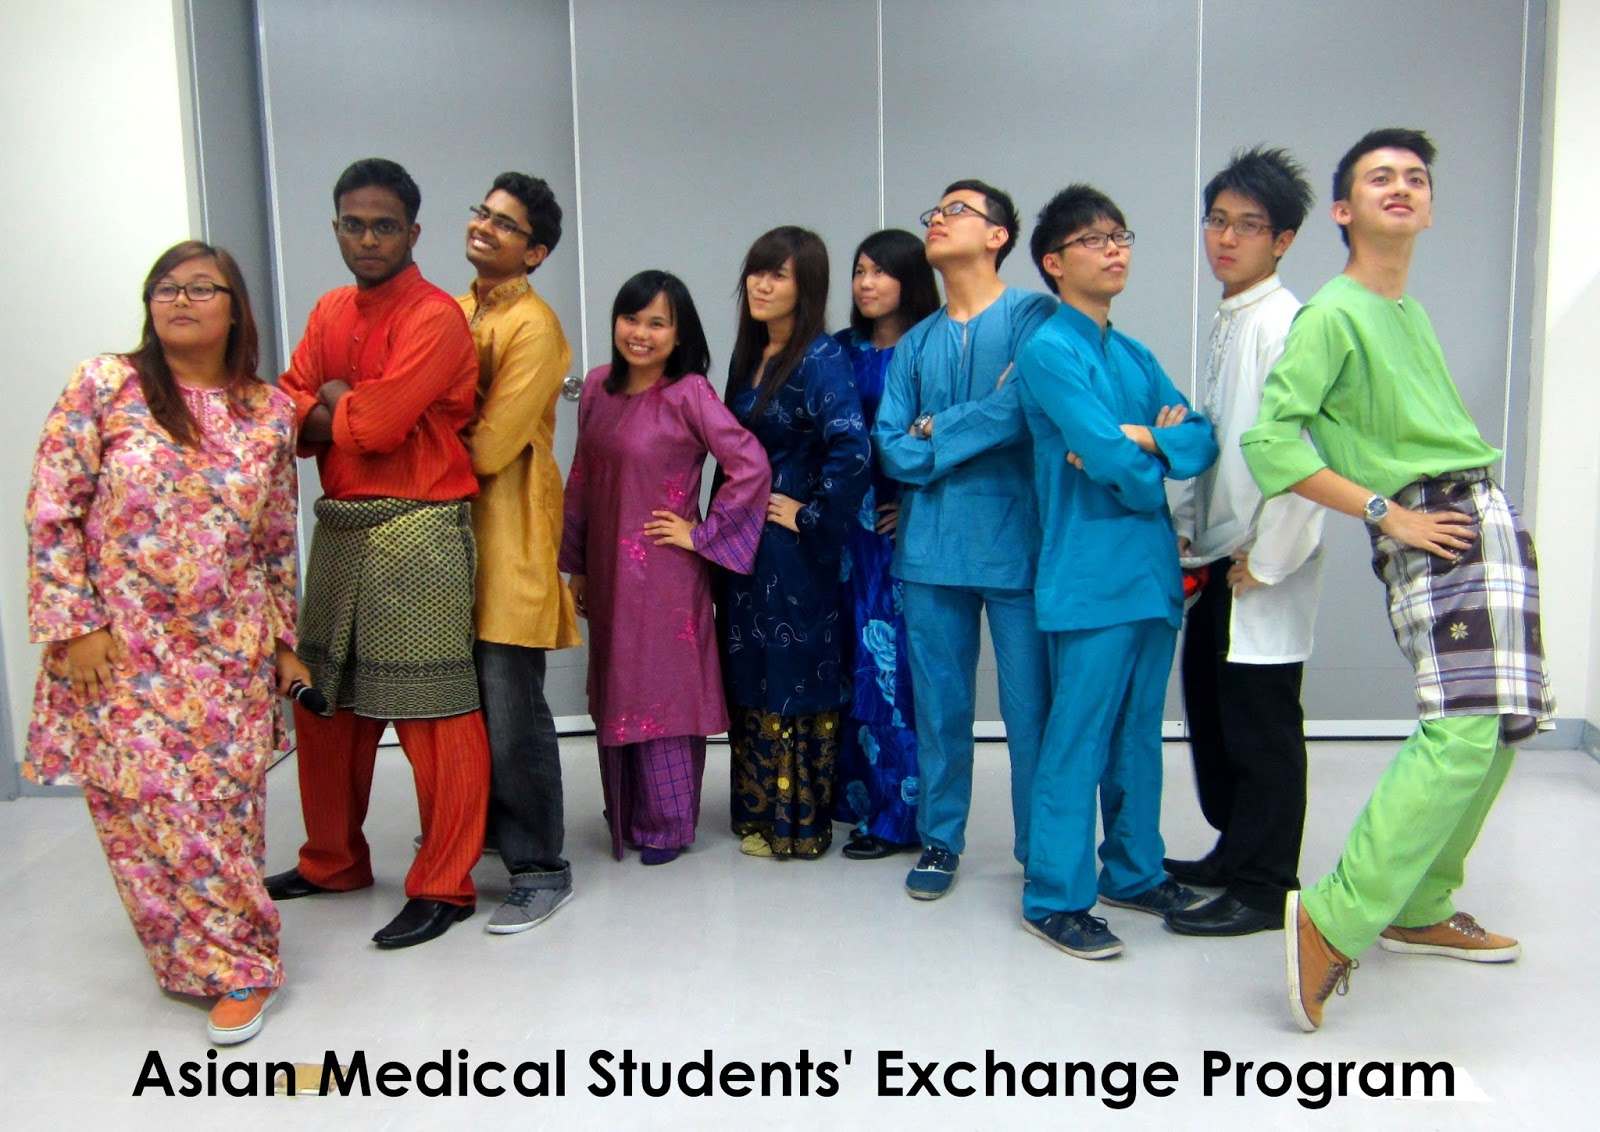 Remarkable, Asian medical students accept